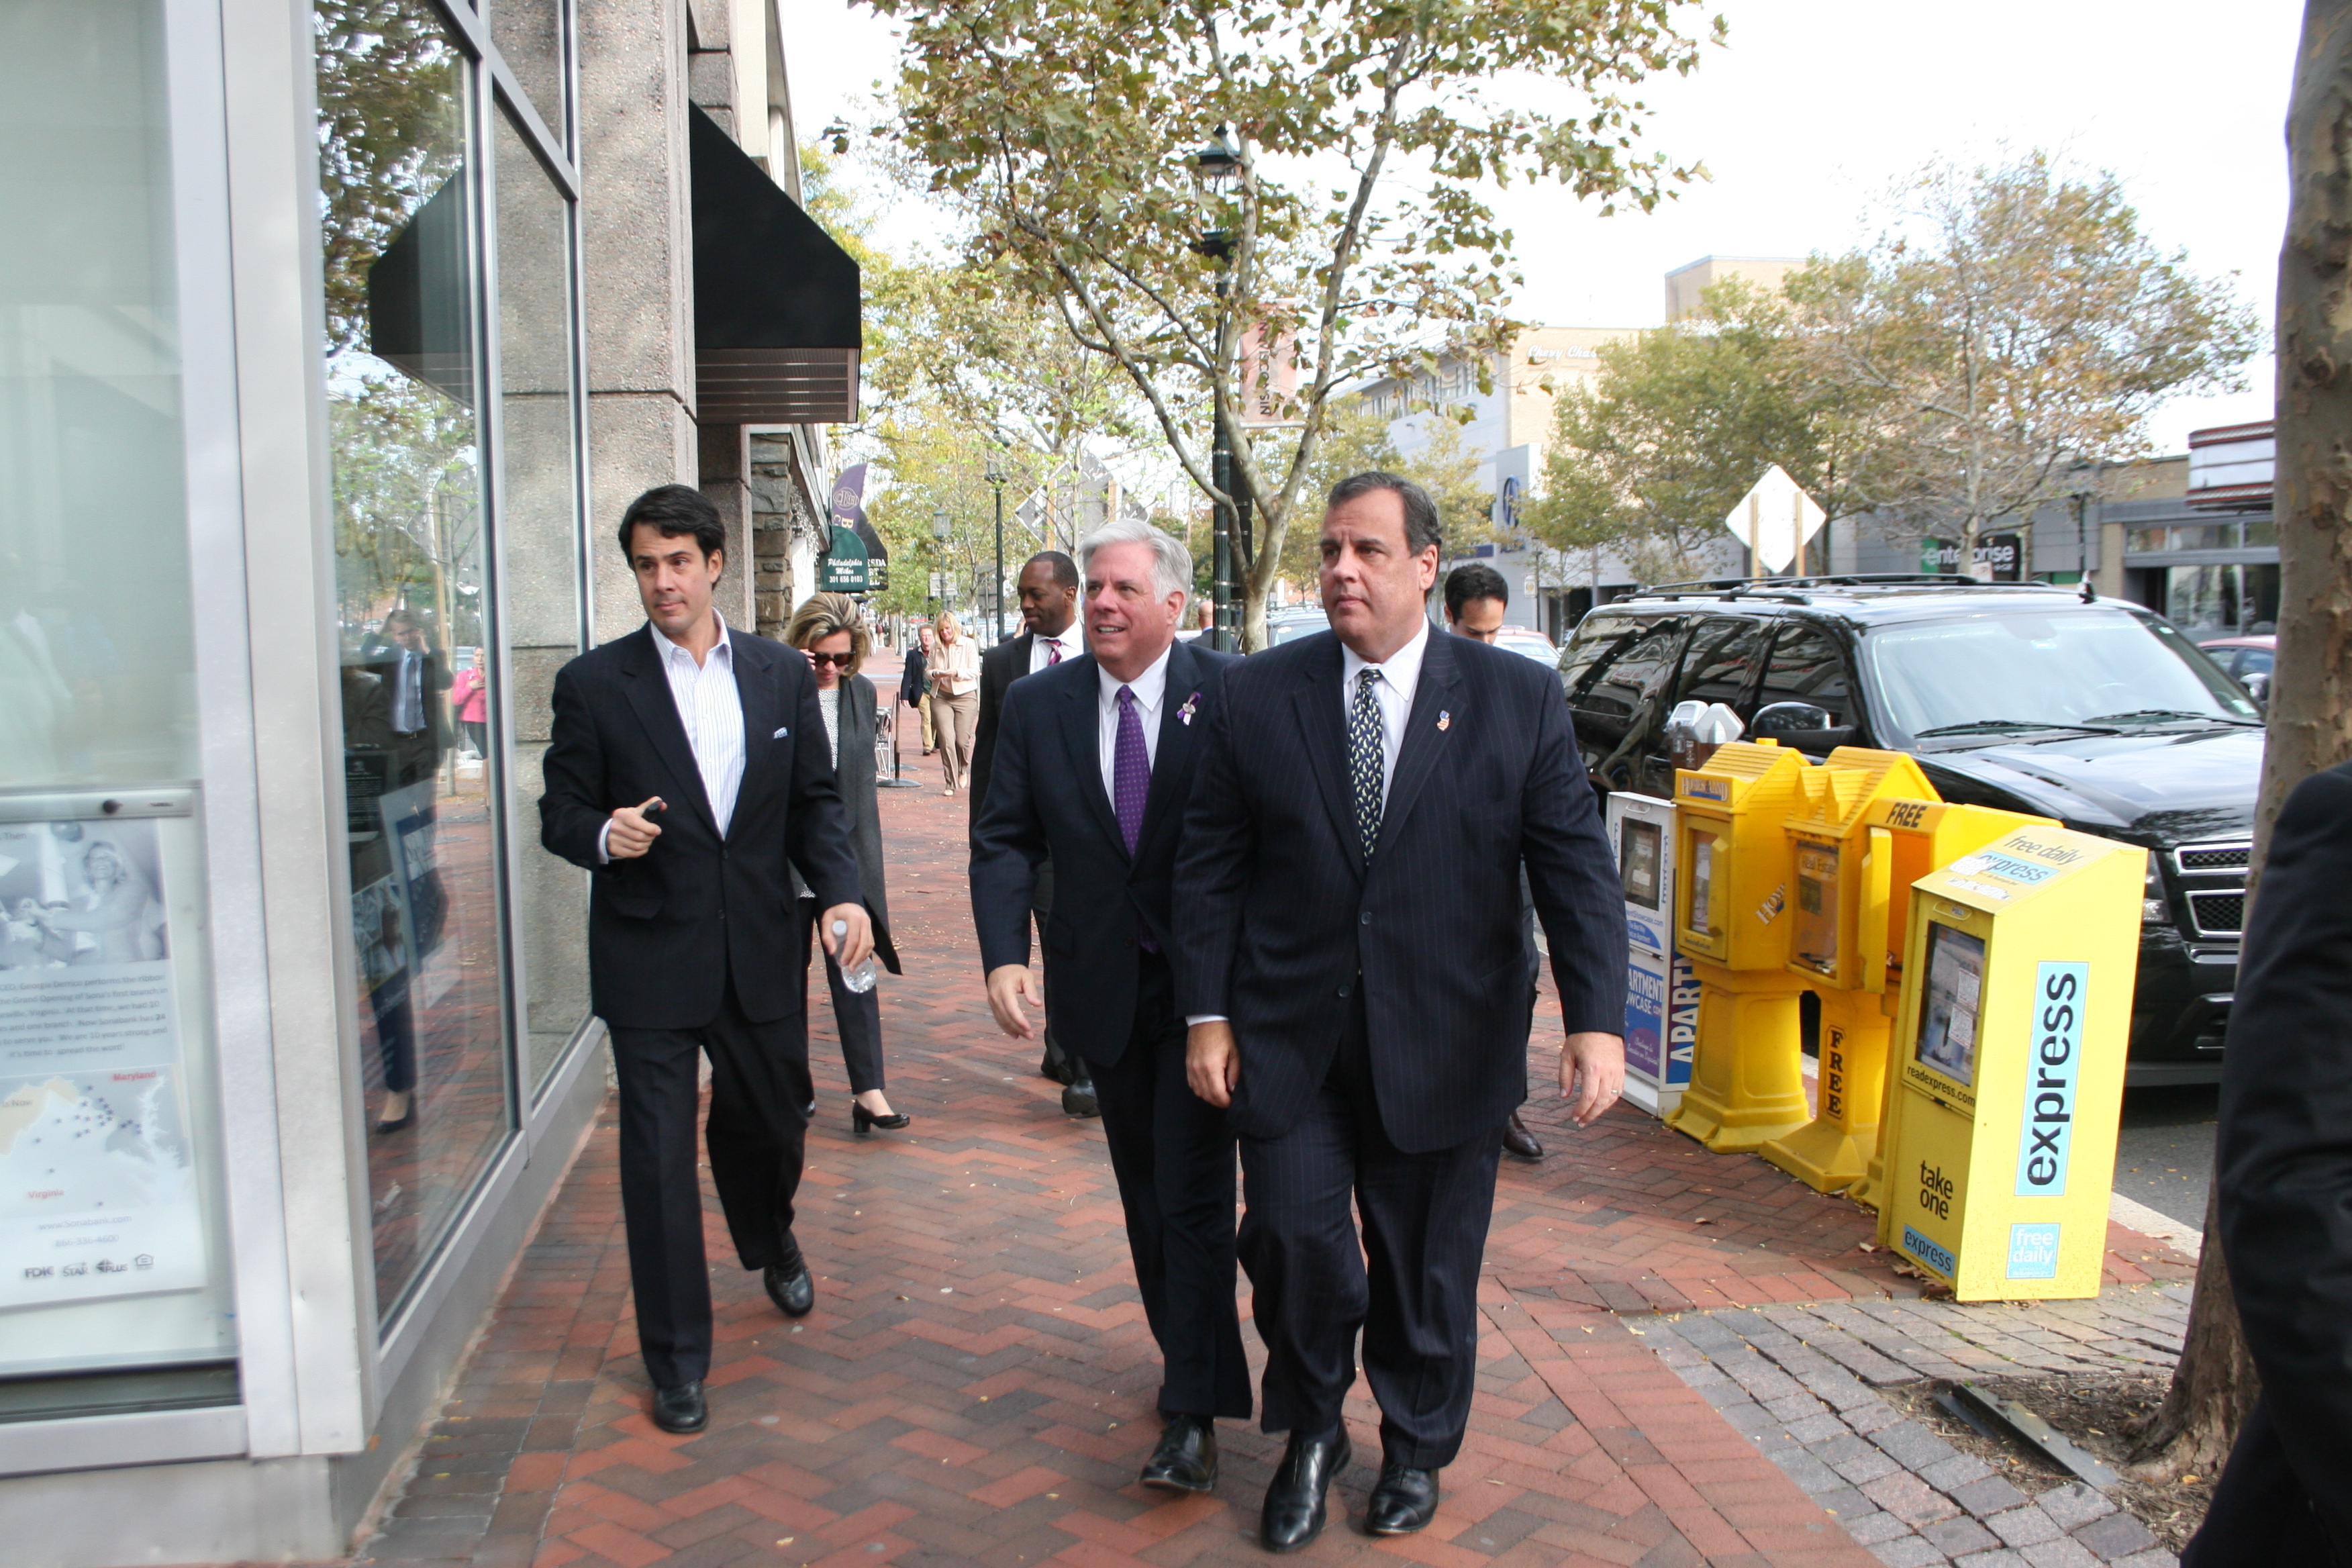 Blue Maryland can go Republican with Hogan, Christie says